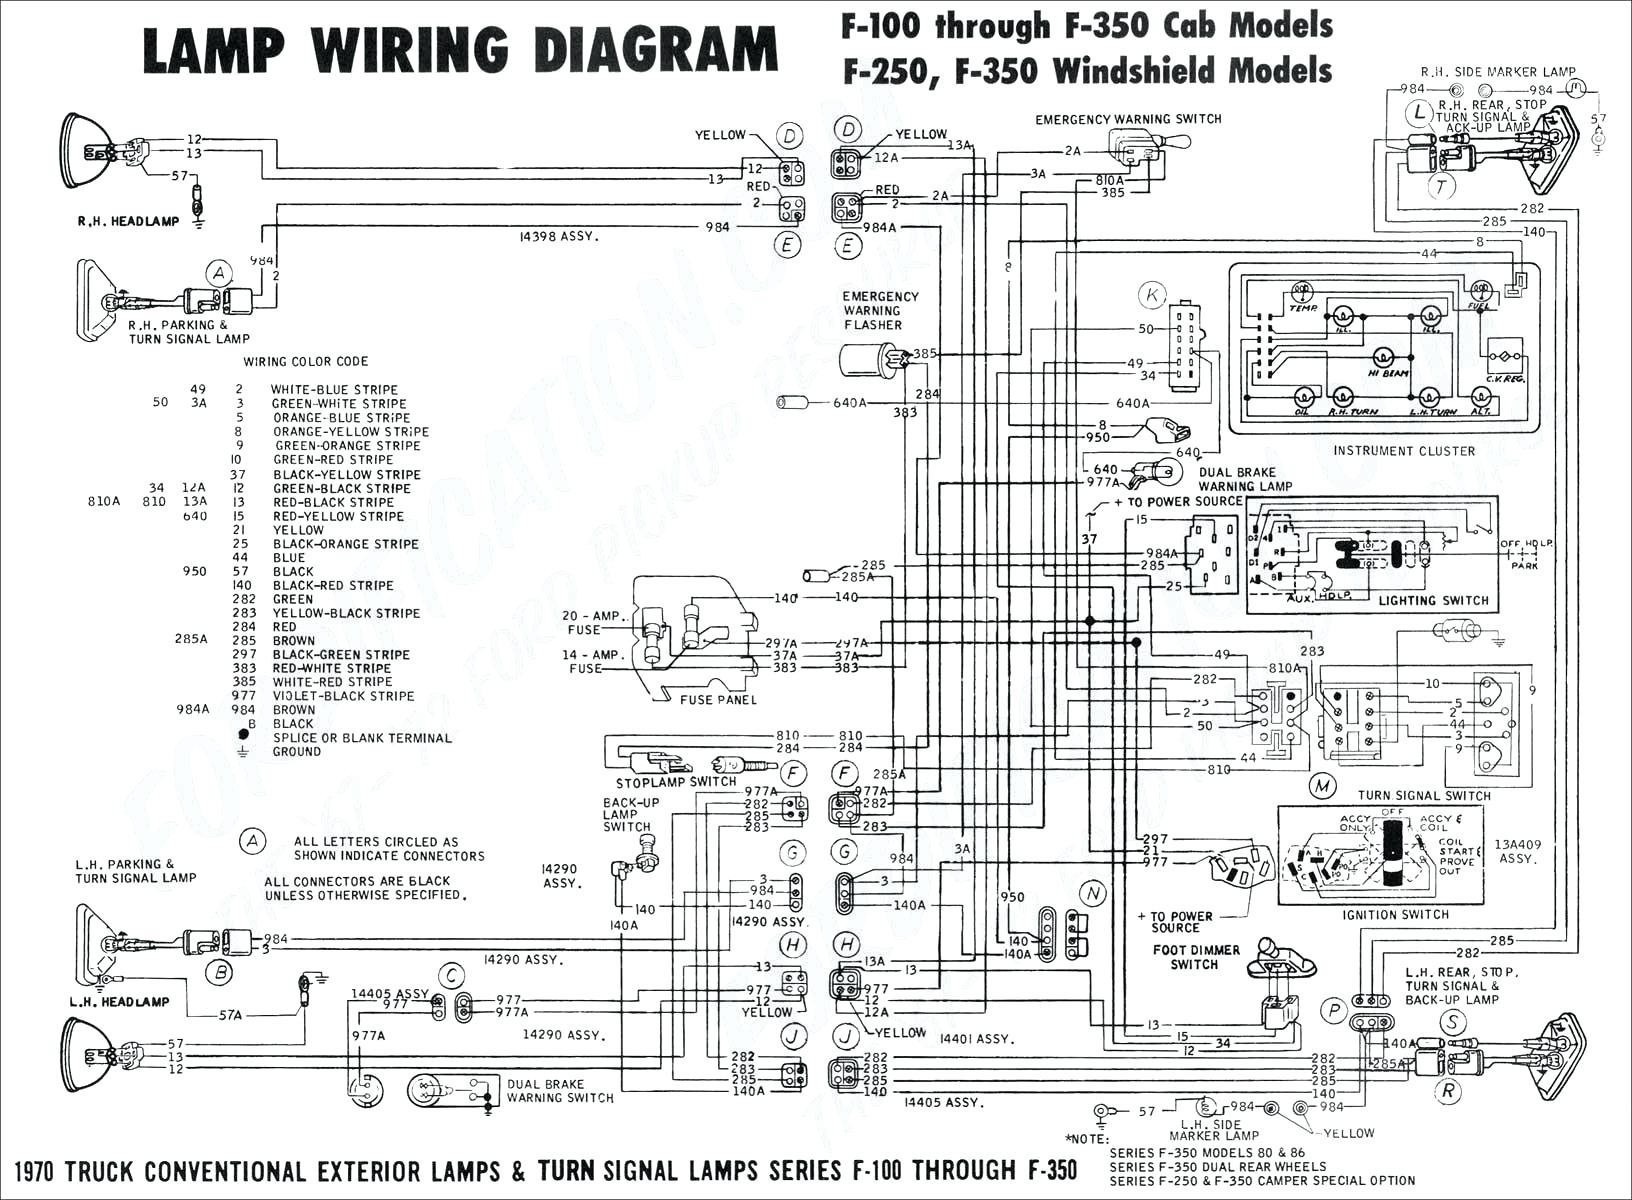 2005 Trailblazer Stereo Wiring Diagram 1 Way Switch Wiring Diagram Of 2005 Trailblazer Stereo Wiring Diagram